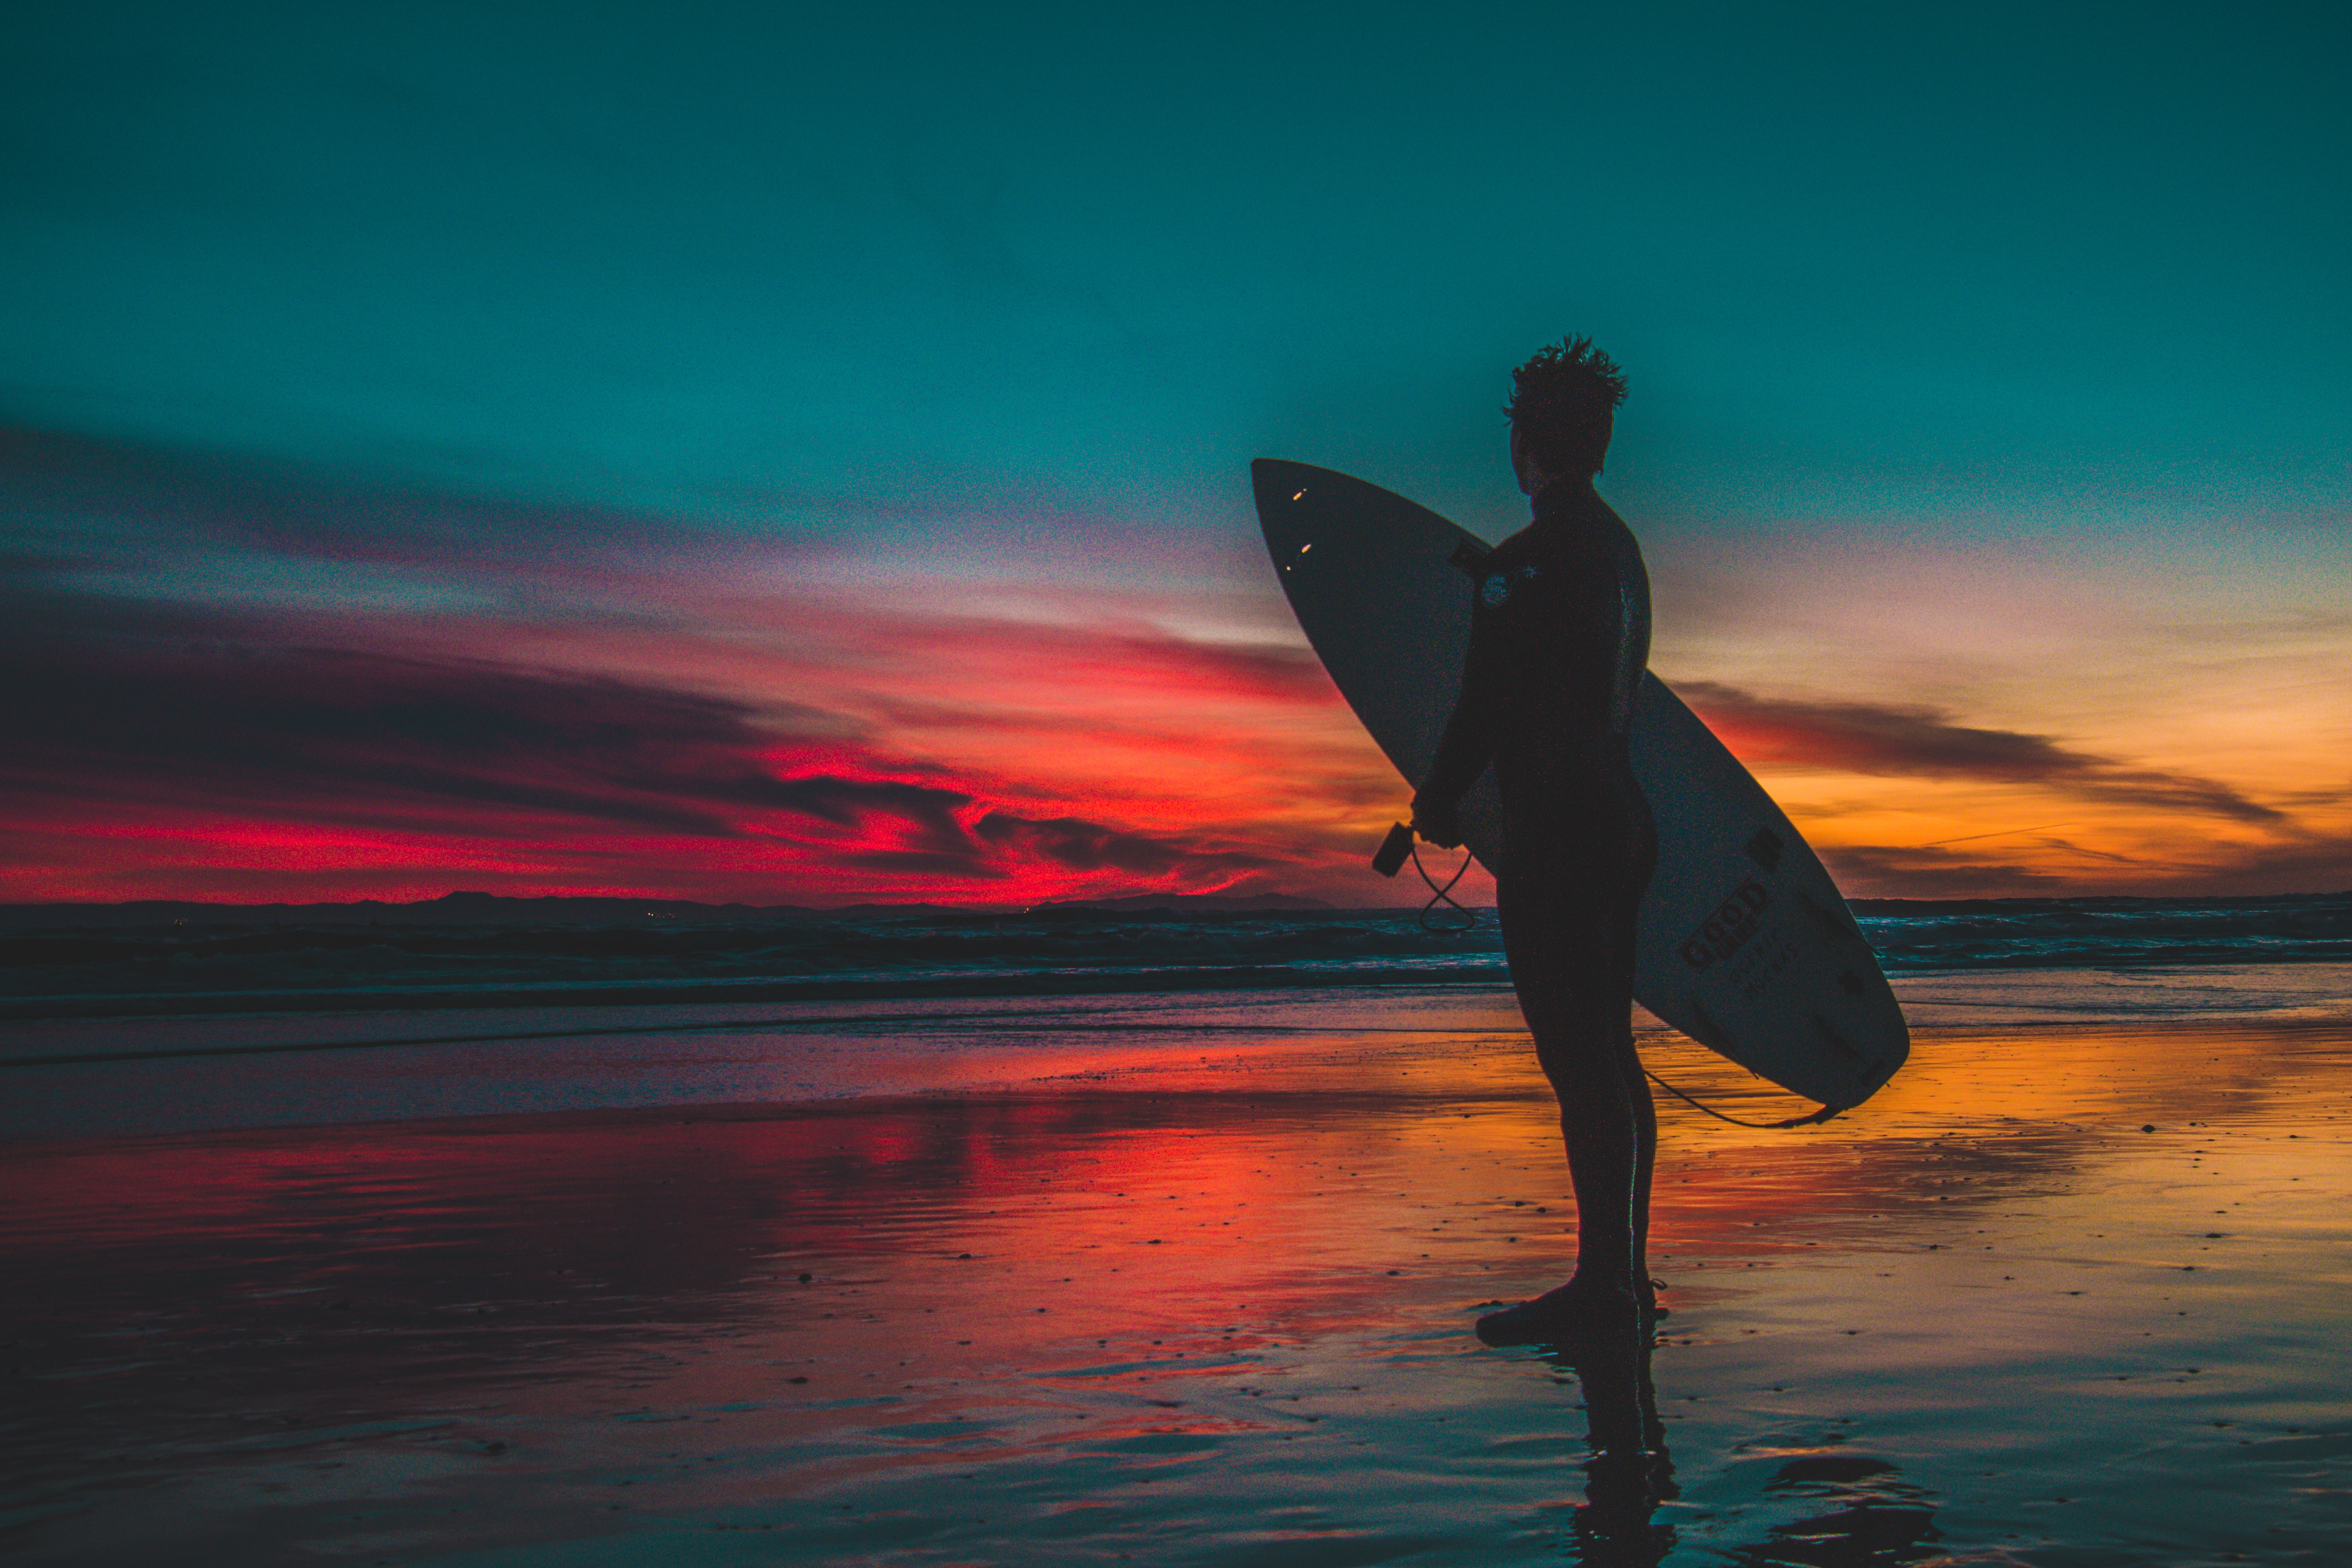 150775 download wallpaper Sports, Sunset, Twilight, Serfing, Shore, Bank, Dusk, Surfer screensavers and pictures for free